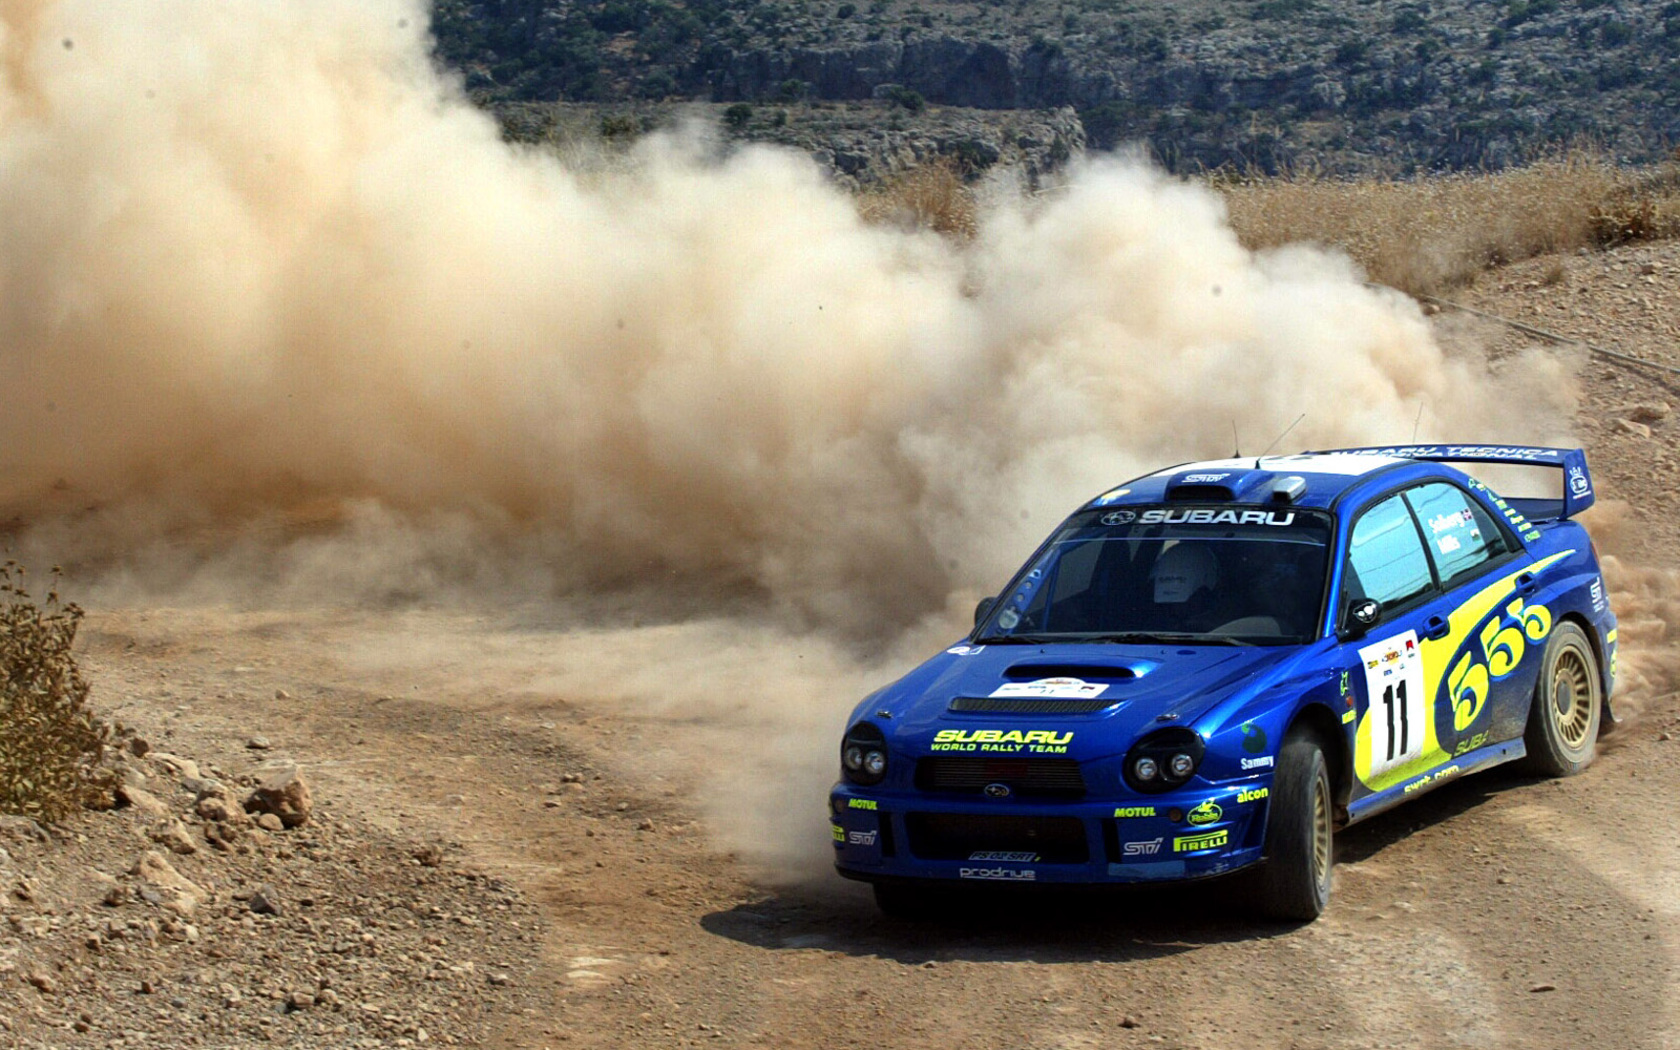 Monster Rally Car Wallpaper Rally Racing Is The Craziest Form Of Racing There Is